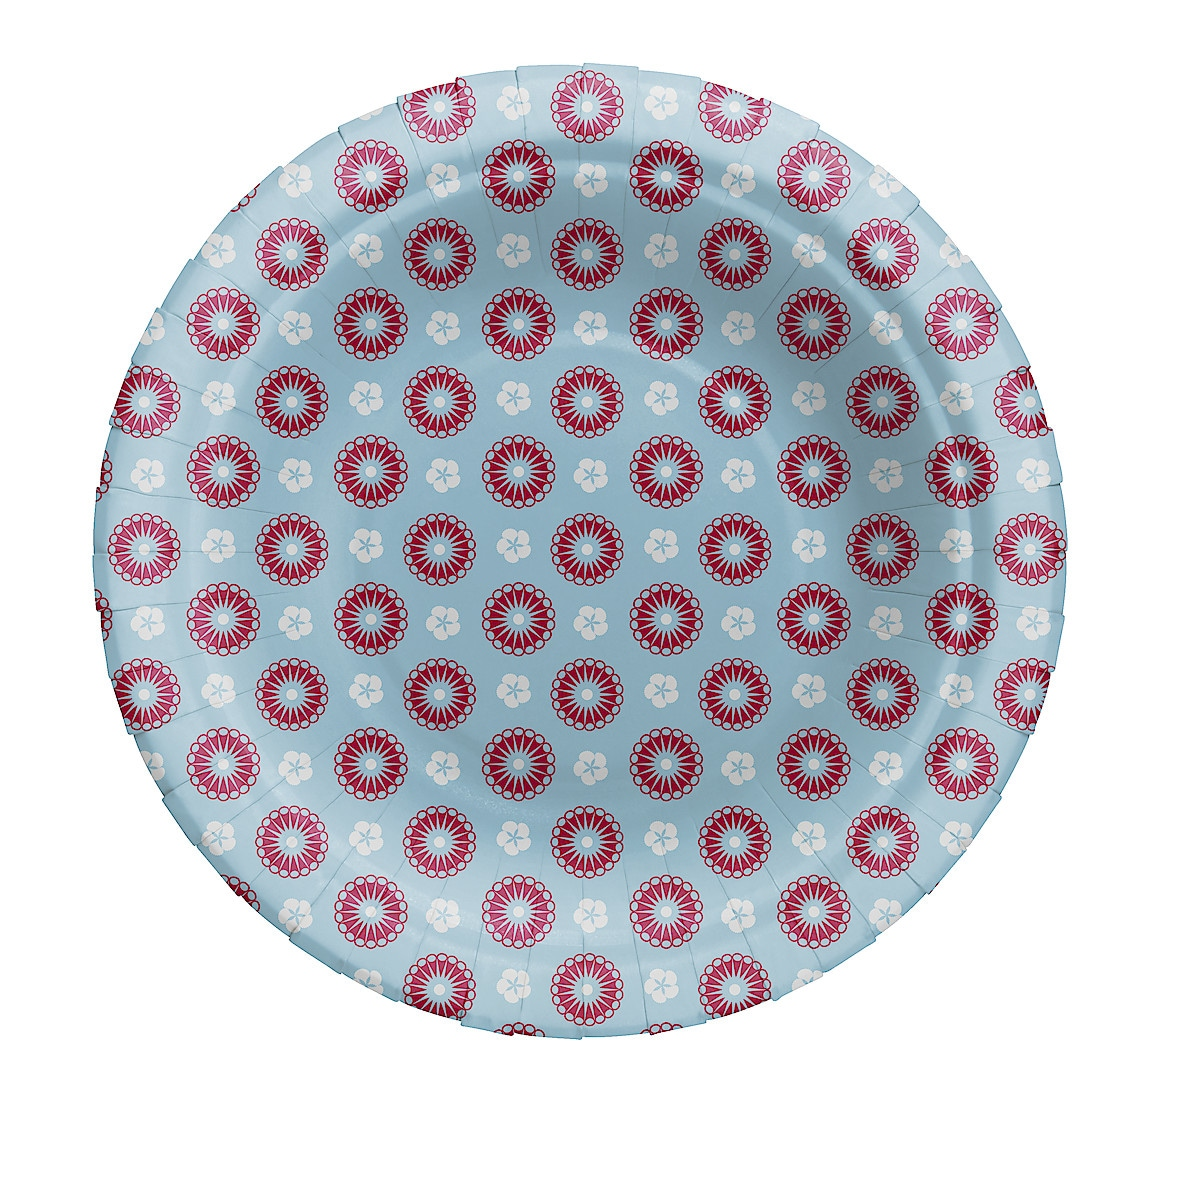 18 cm Patterned Paper Plate